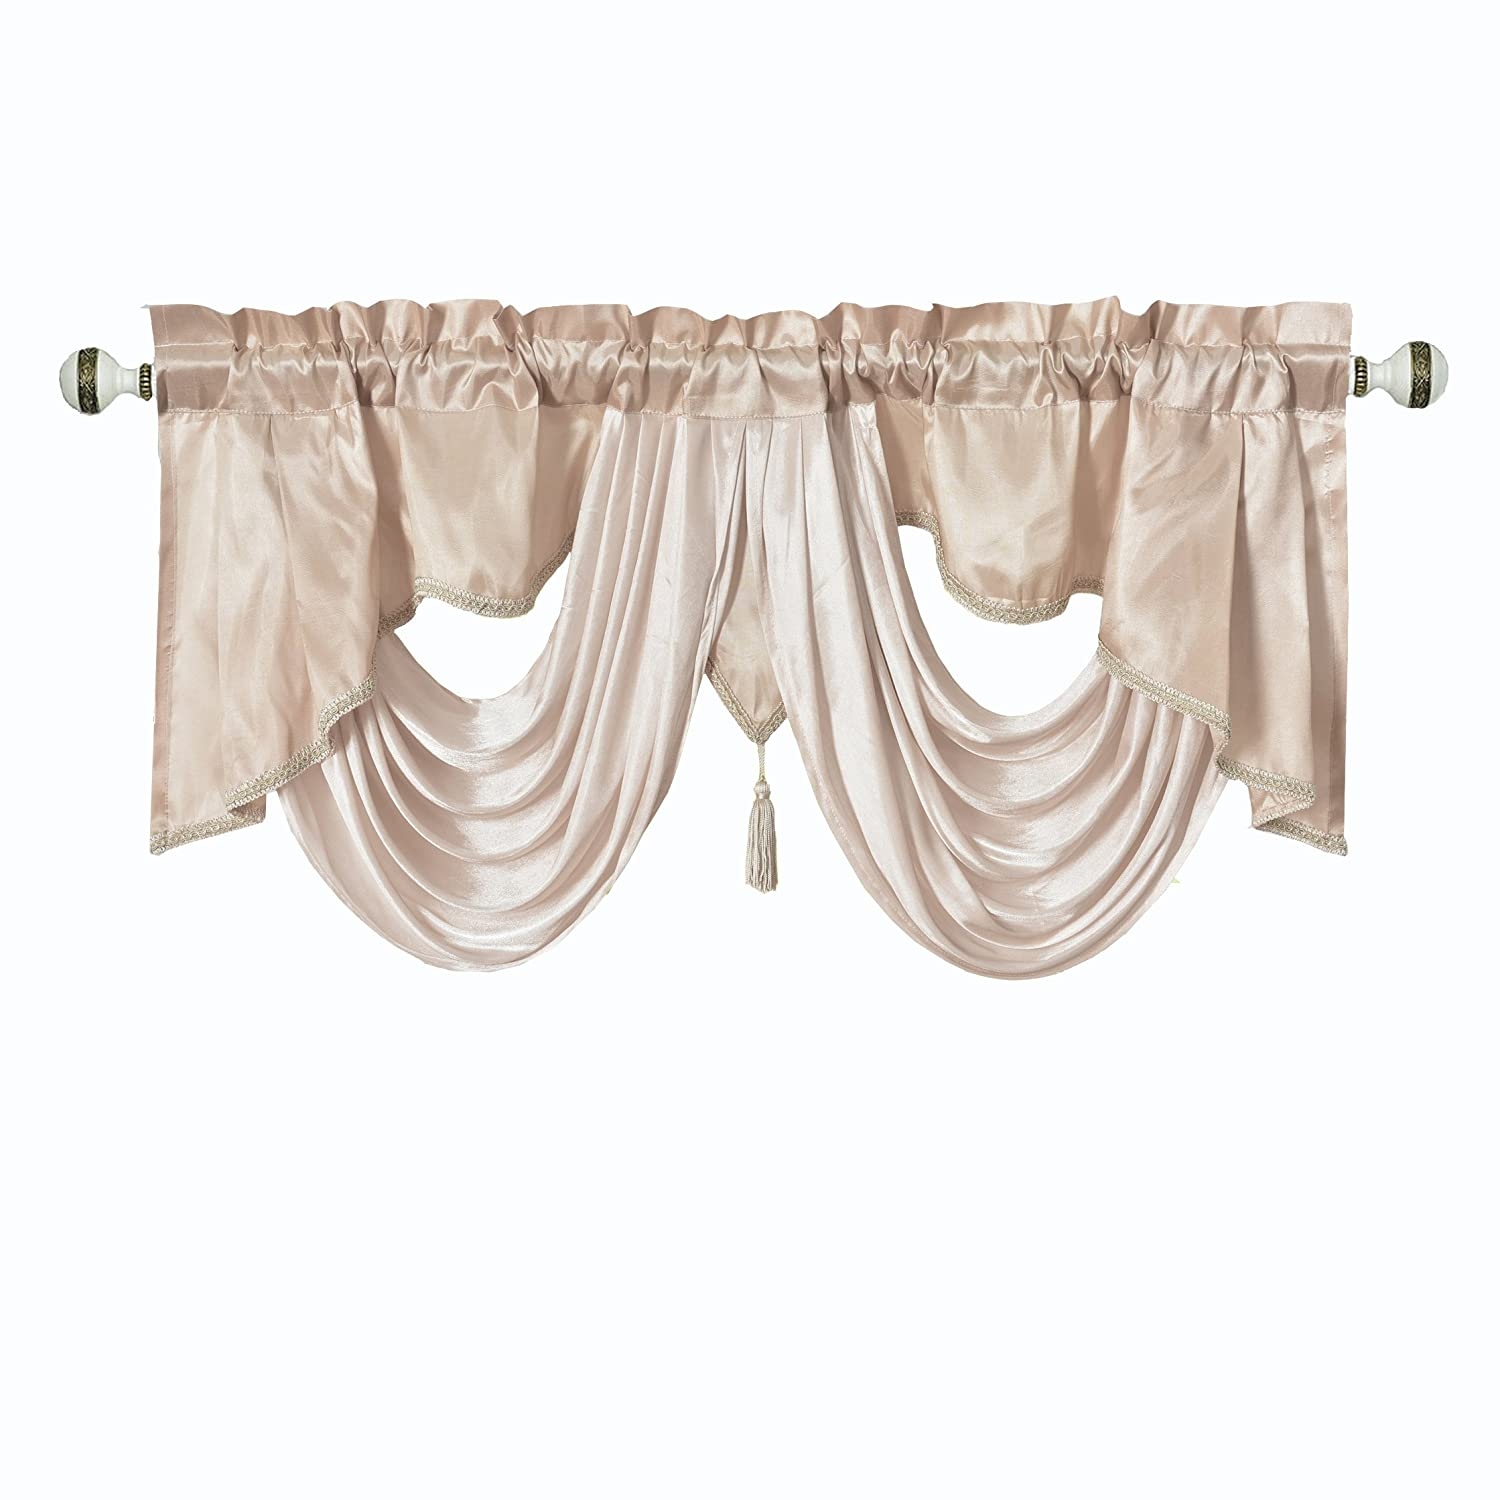 Valarie Fancy Window Valance. 54 x 18 inches. Taffeta Fabric with Soft Satin Swag. Add Some Royal luxruy Accent to Your Home. (Coffee)